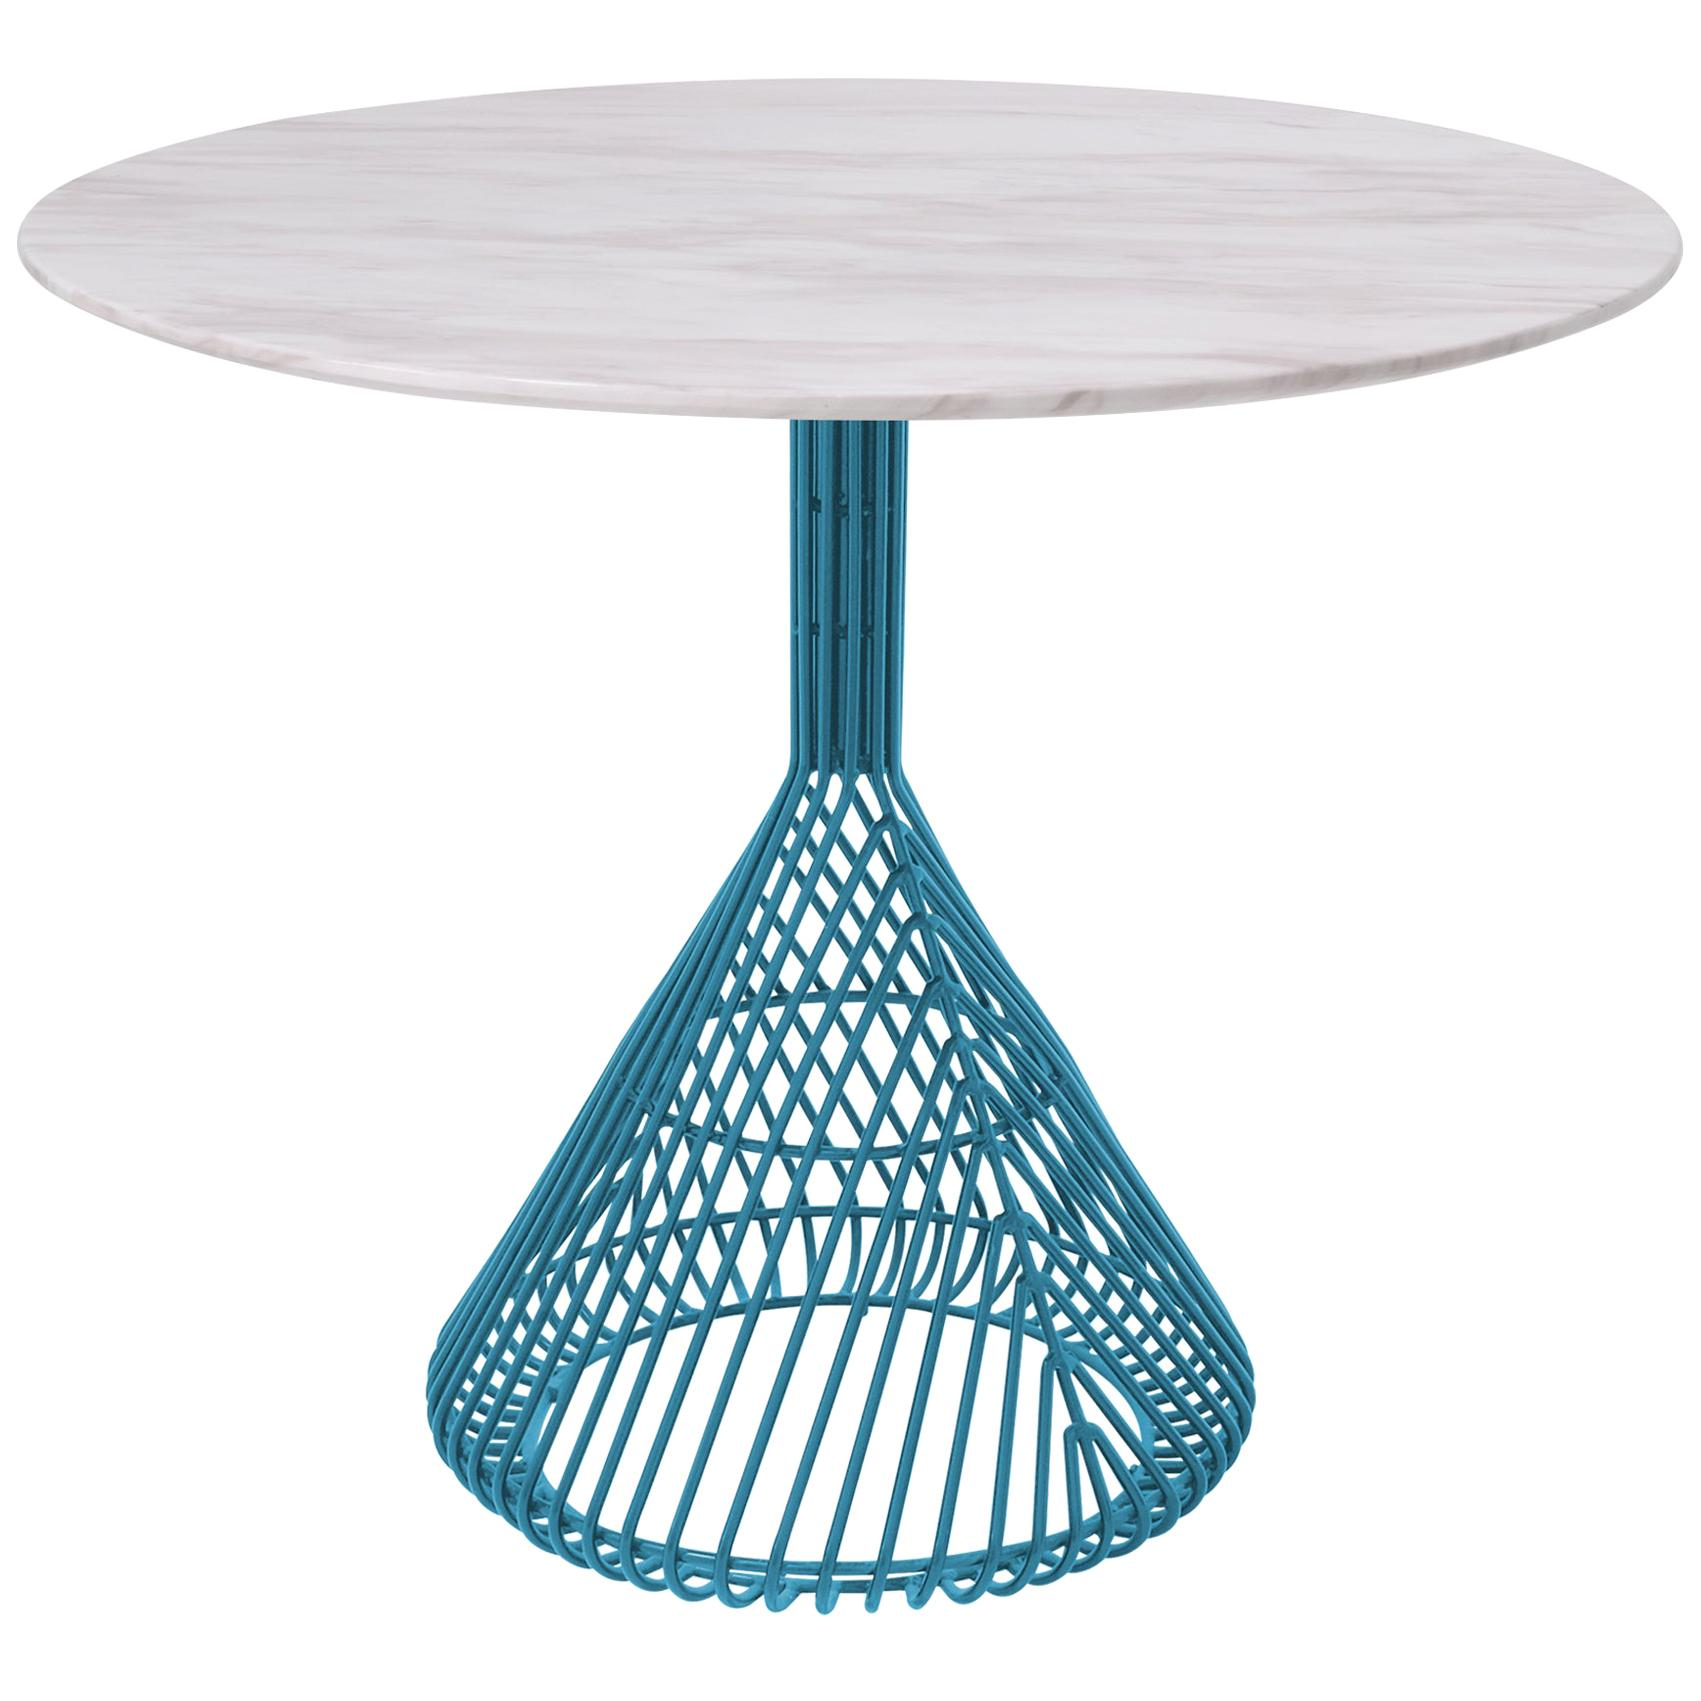 Modern Bistro Table, Wire Dining Table in Peacock Blue with White Marble Top